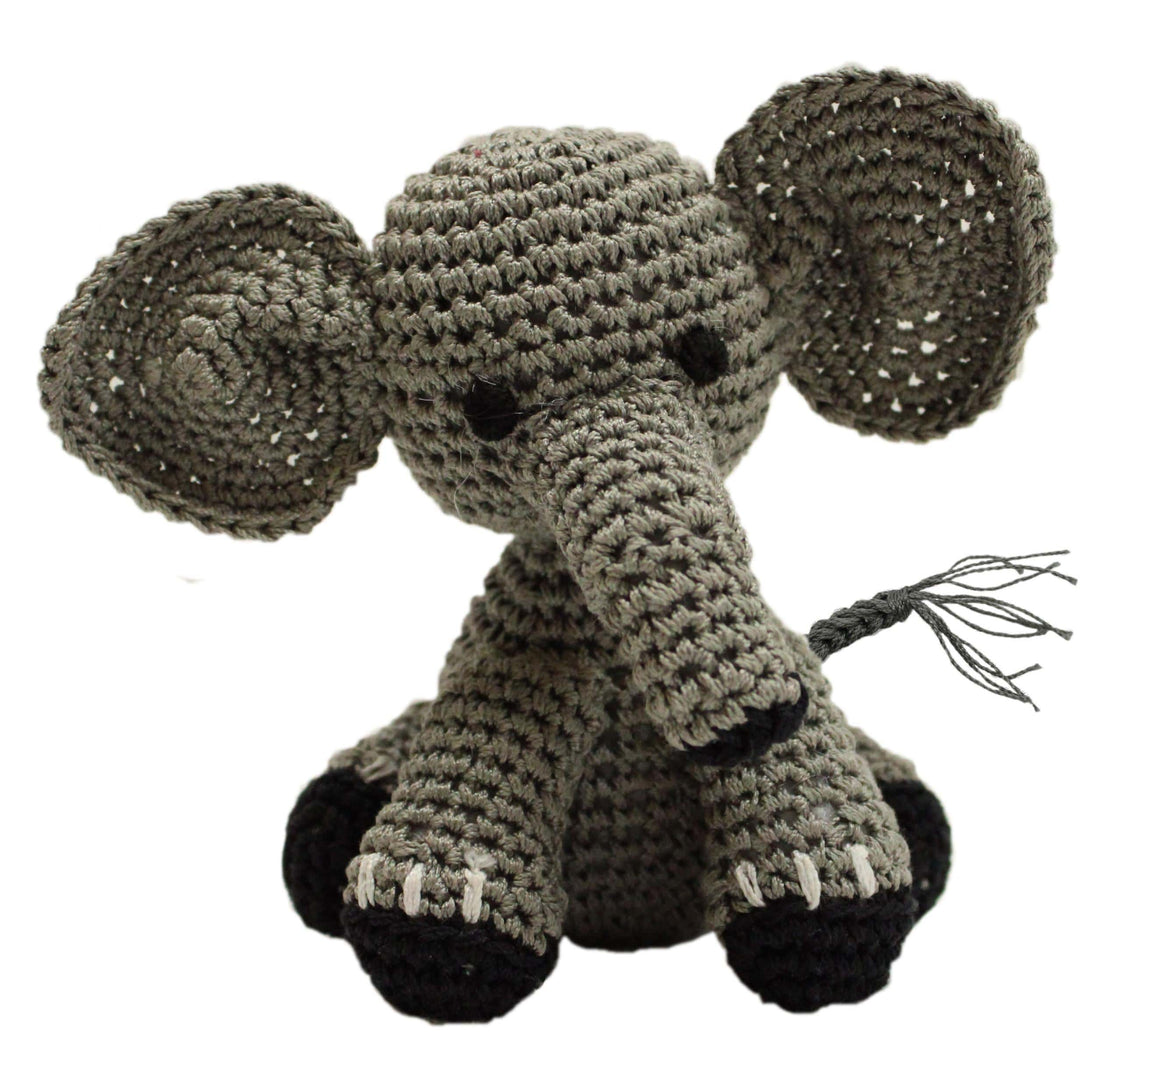 Doggy Stylz Dog-products Toys Knit Knacks Bubbles The Baby Elephant Organic Cotton Small Dog Toy